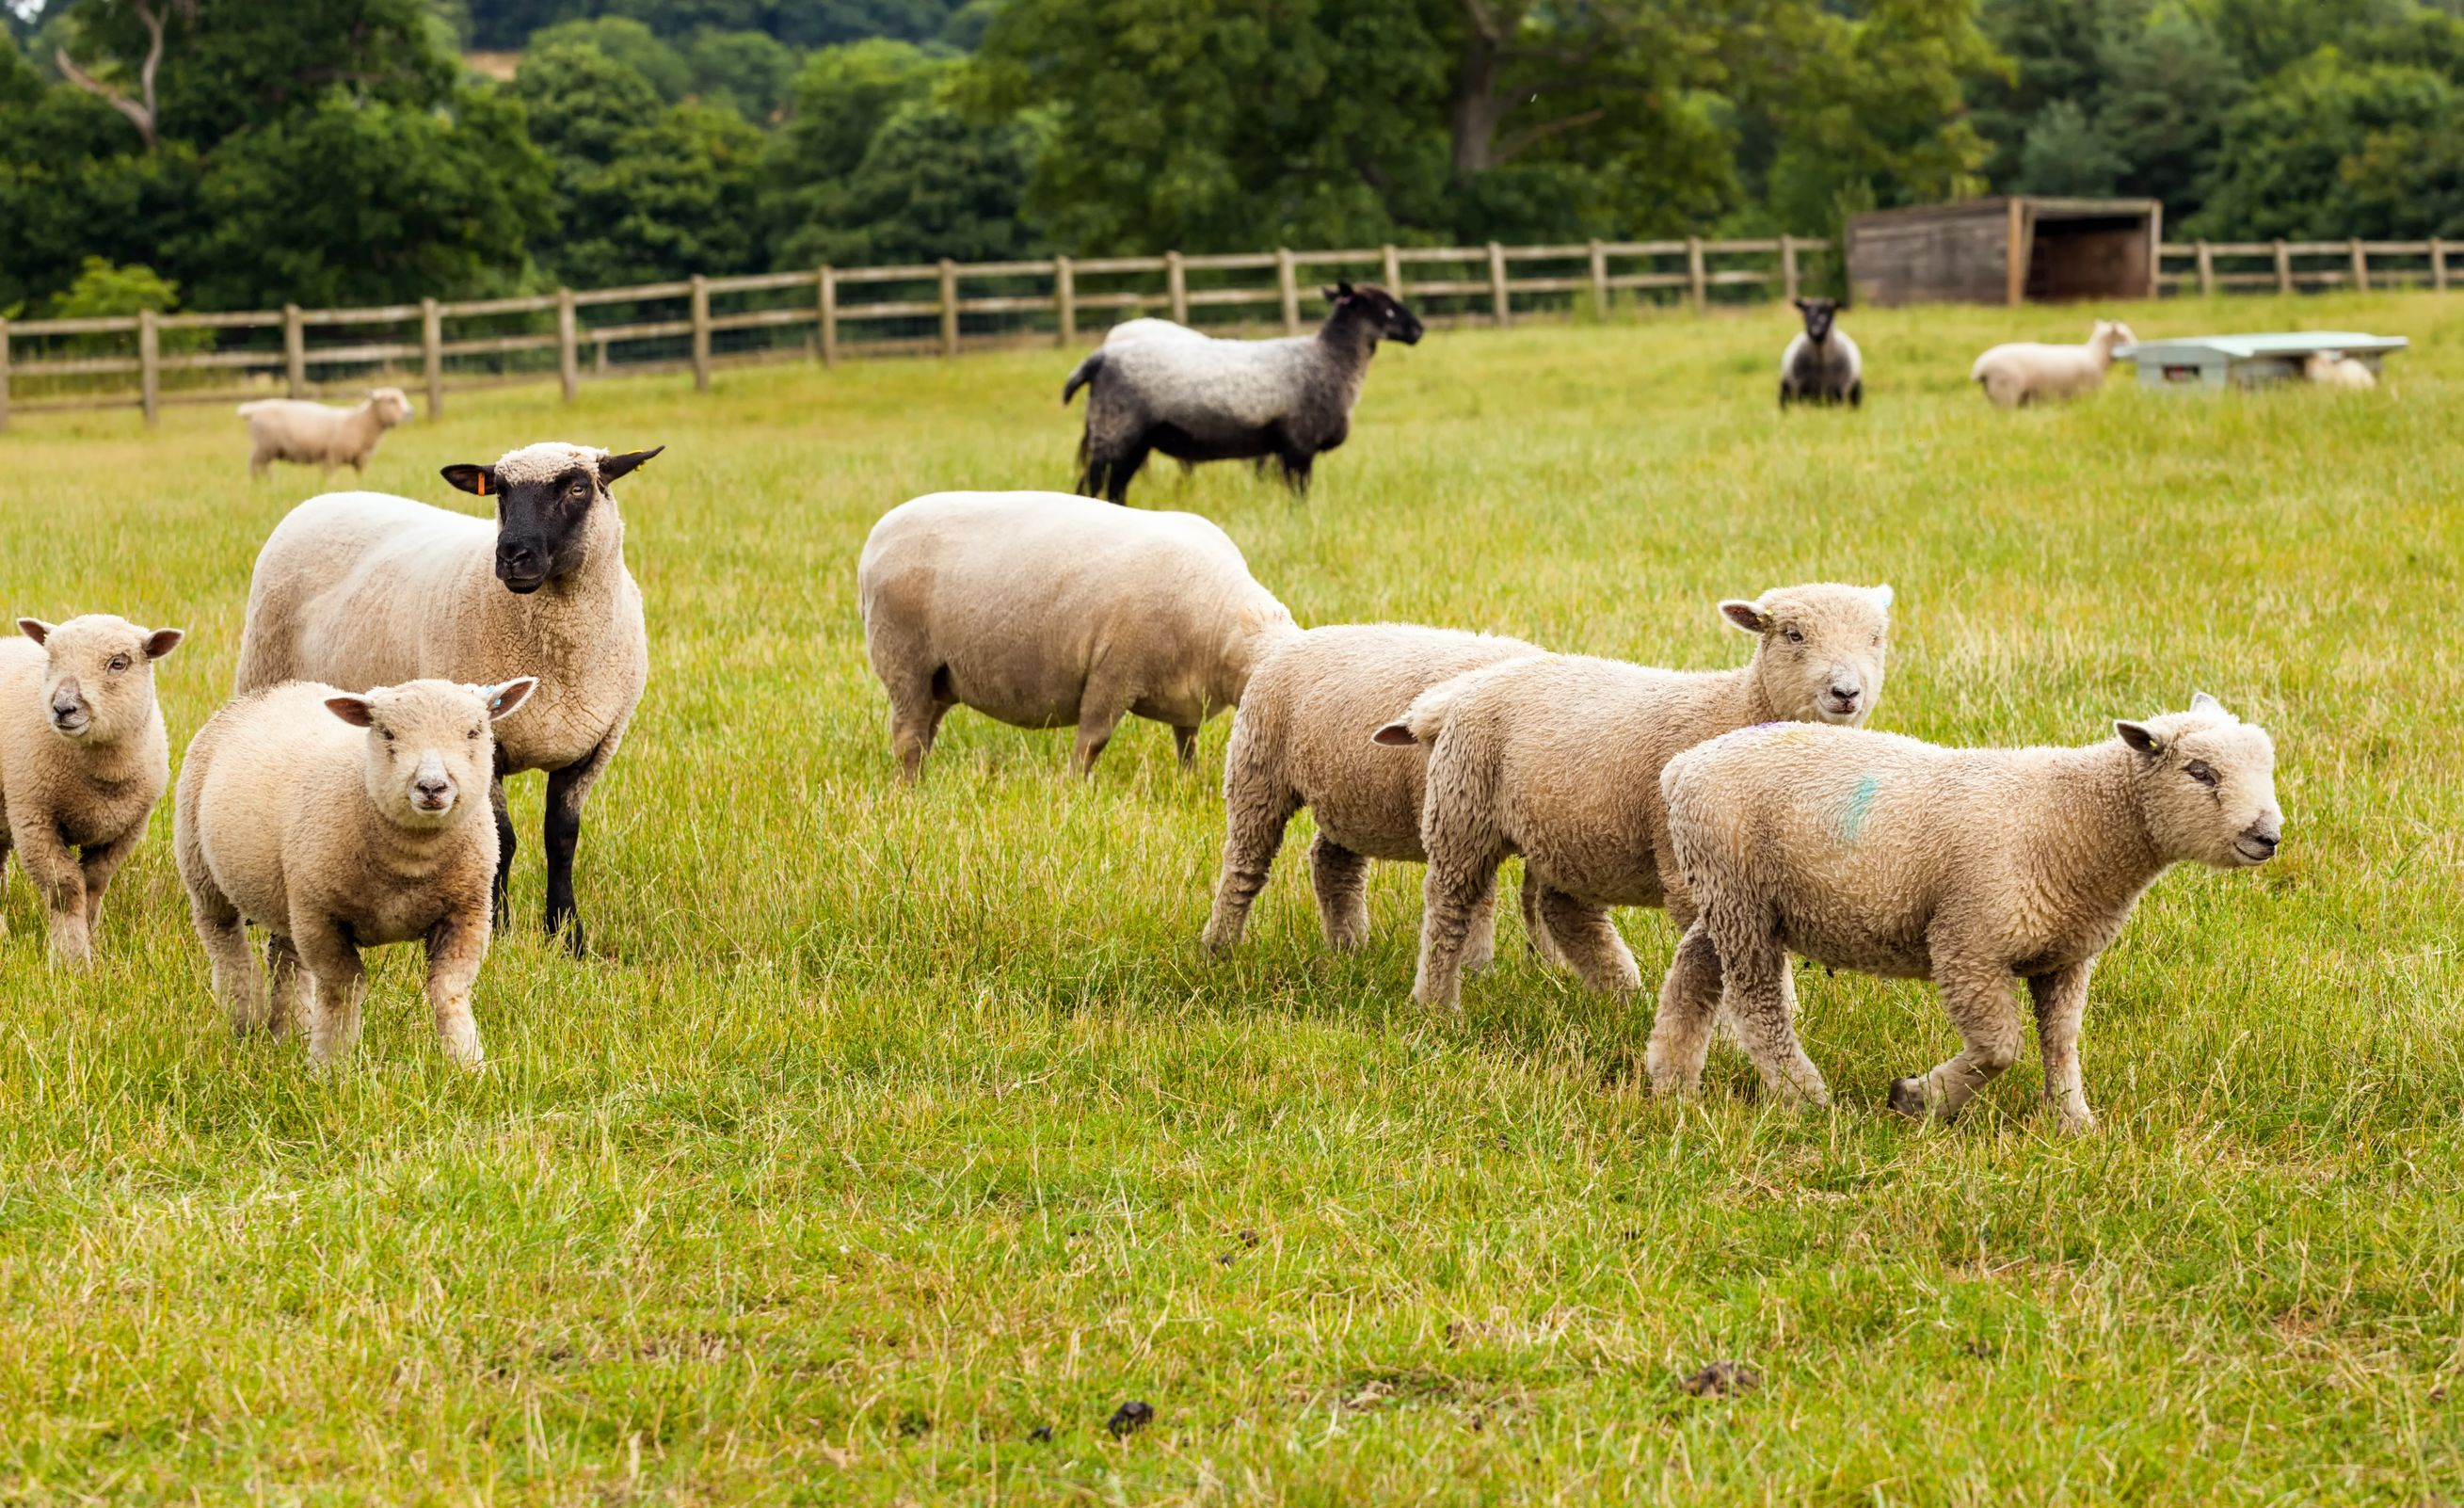 The five-year animal health programme aims to drive the Welsh farming industry forward